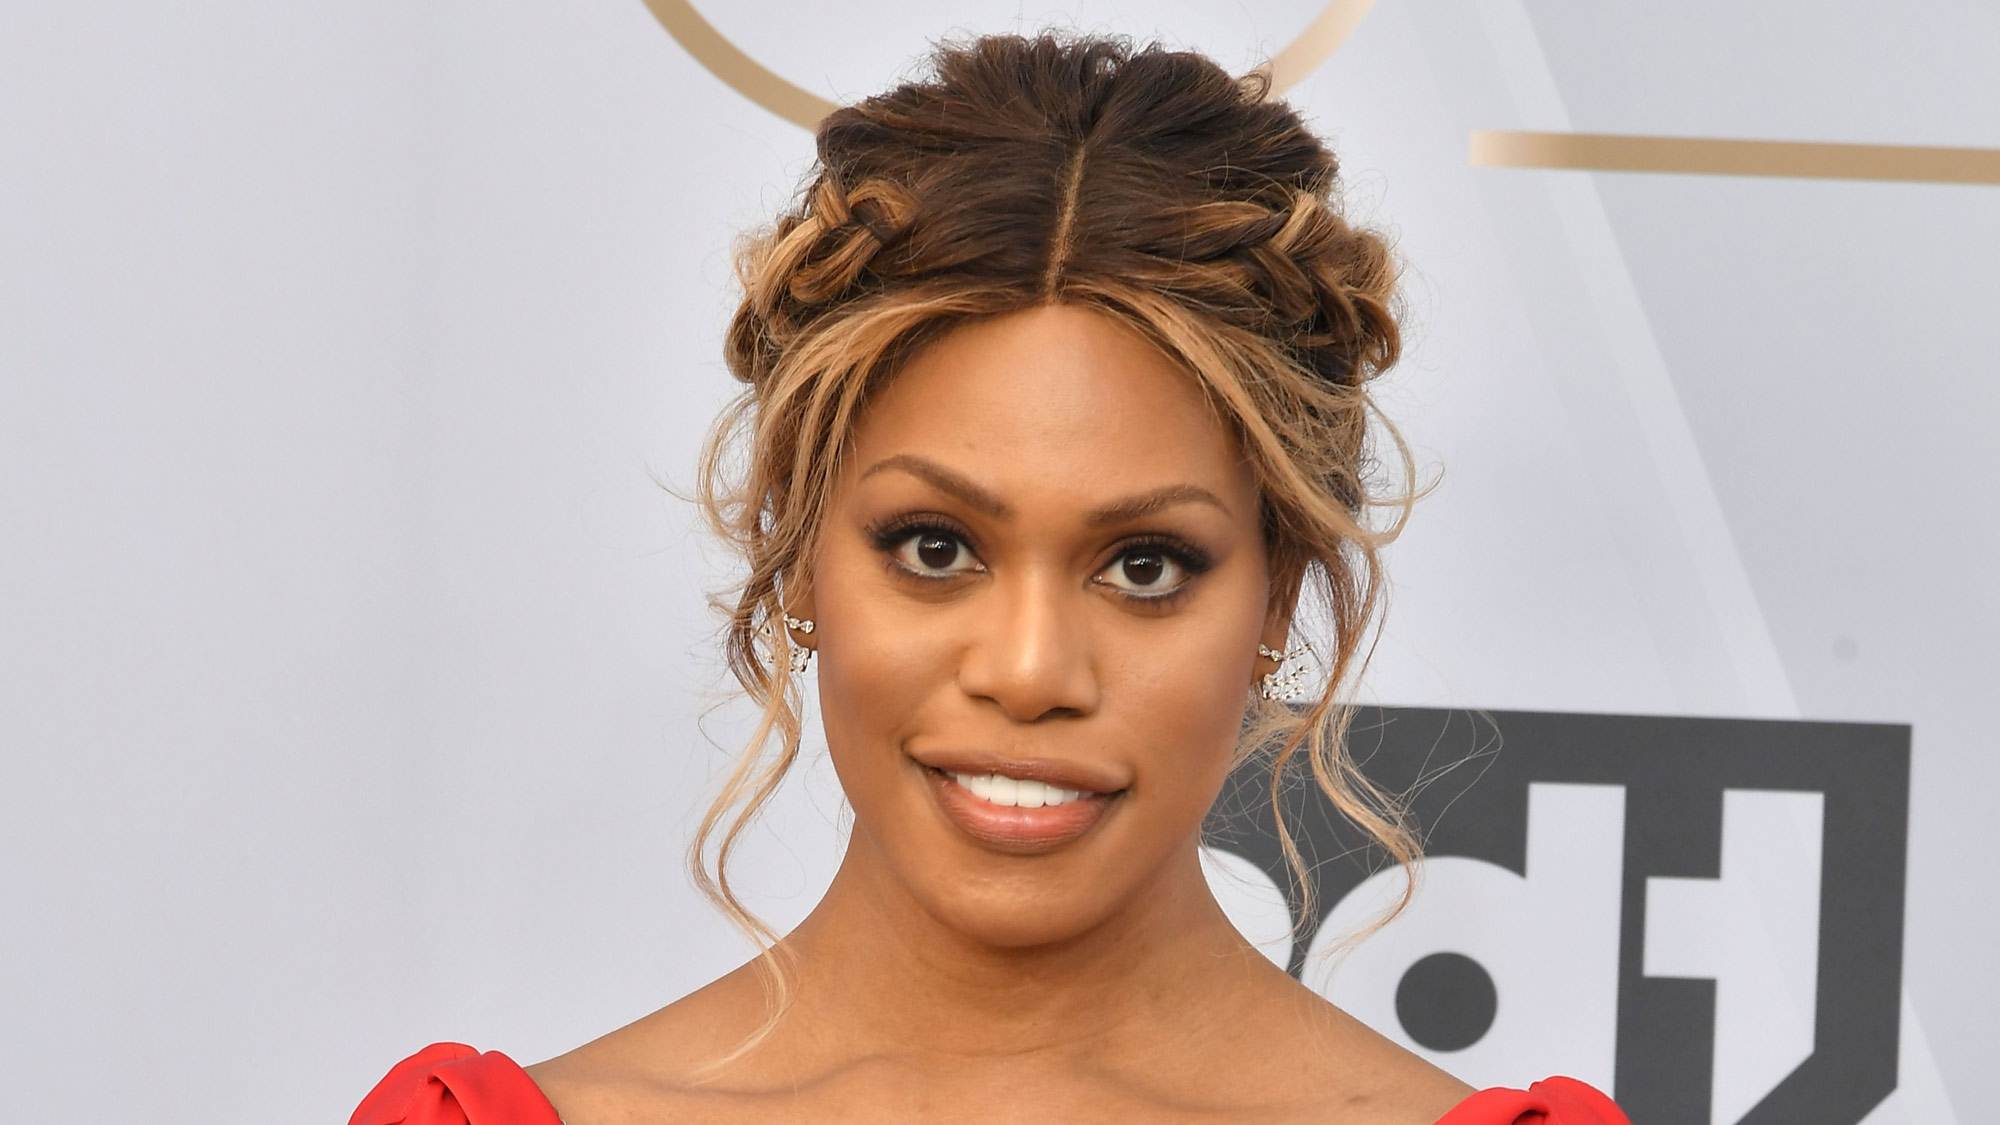 Fashionable Plaited Chignon Braided Hairstyles Throughout Plait Hairstyles To Take Straight To Your Hairdresser's This (View 9 of 20)